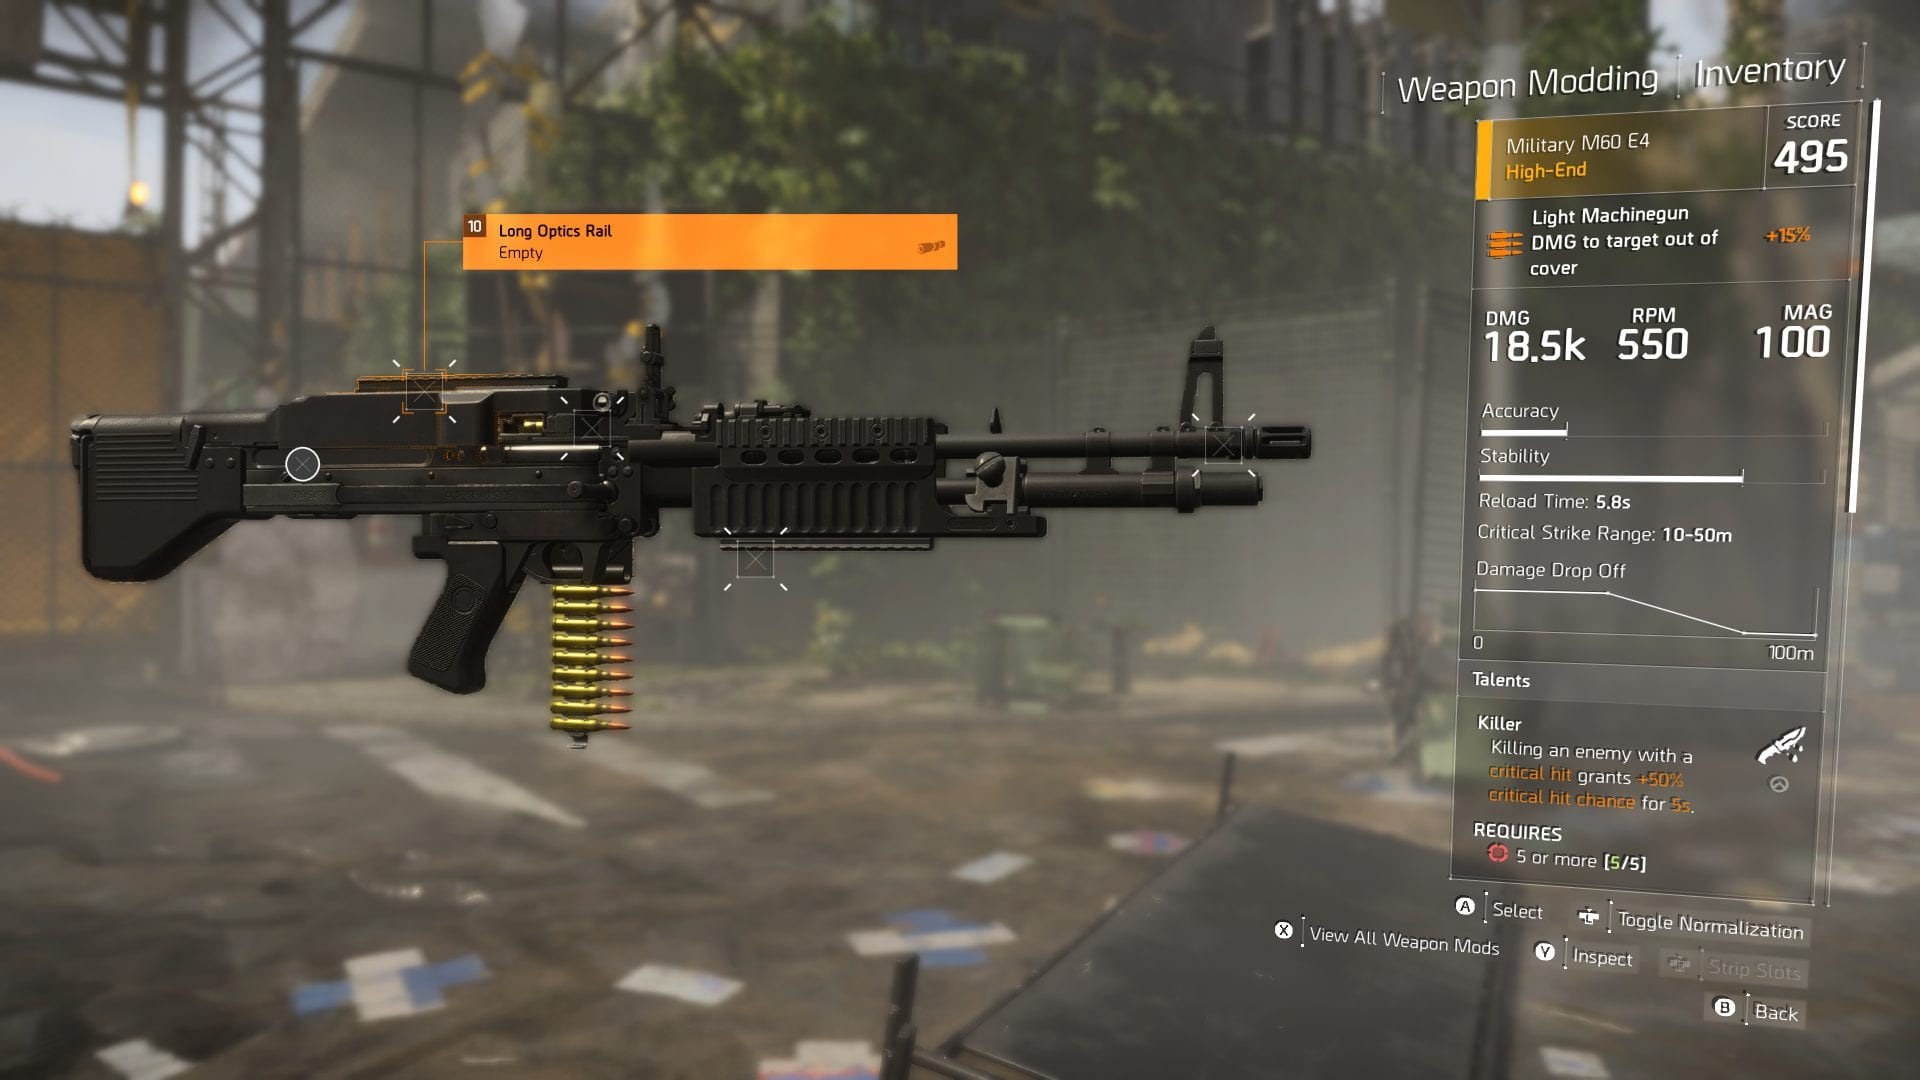 The best LMG's in The Division 2 - BuffNerfRepeat